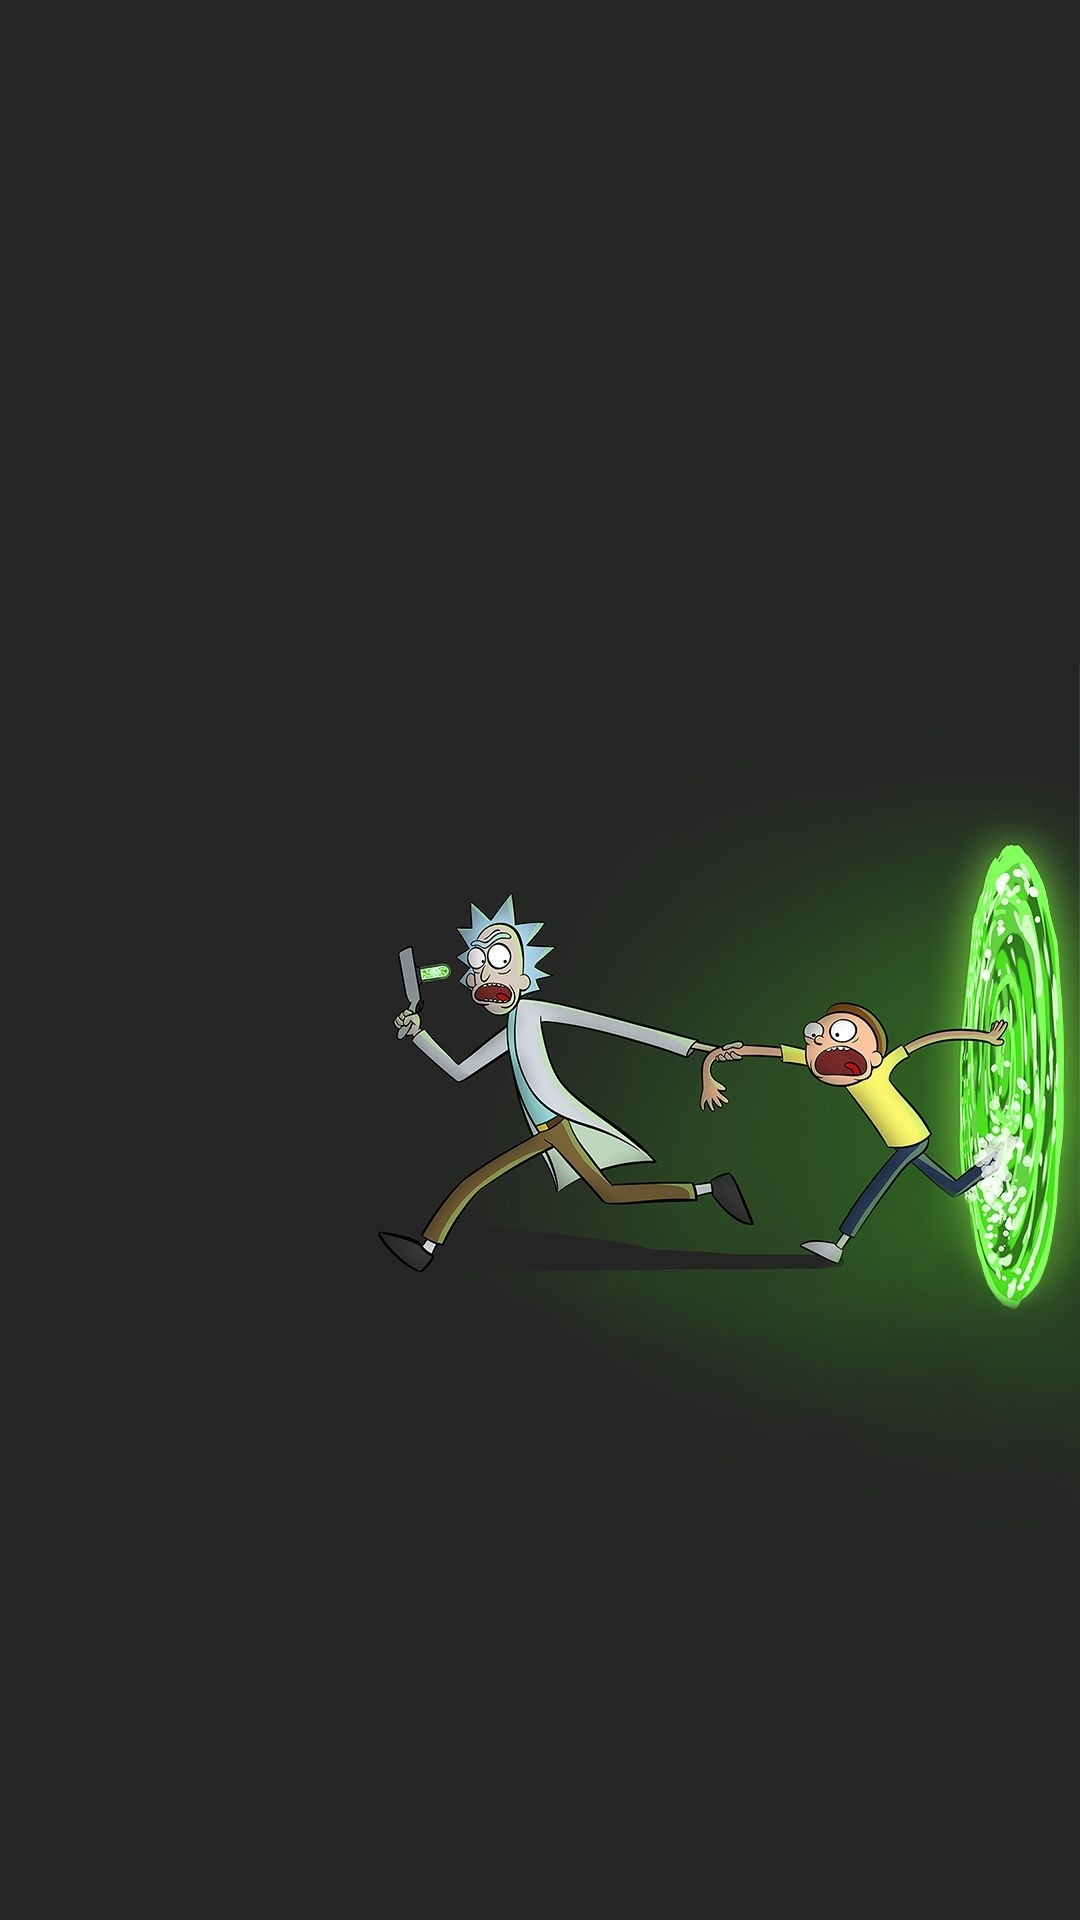 rick and morty iphone wallpaper - 2018 iphone wallpapers | fond